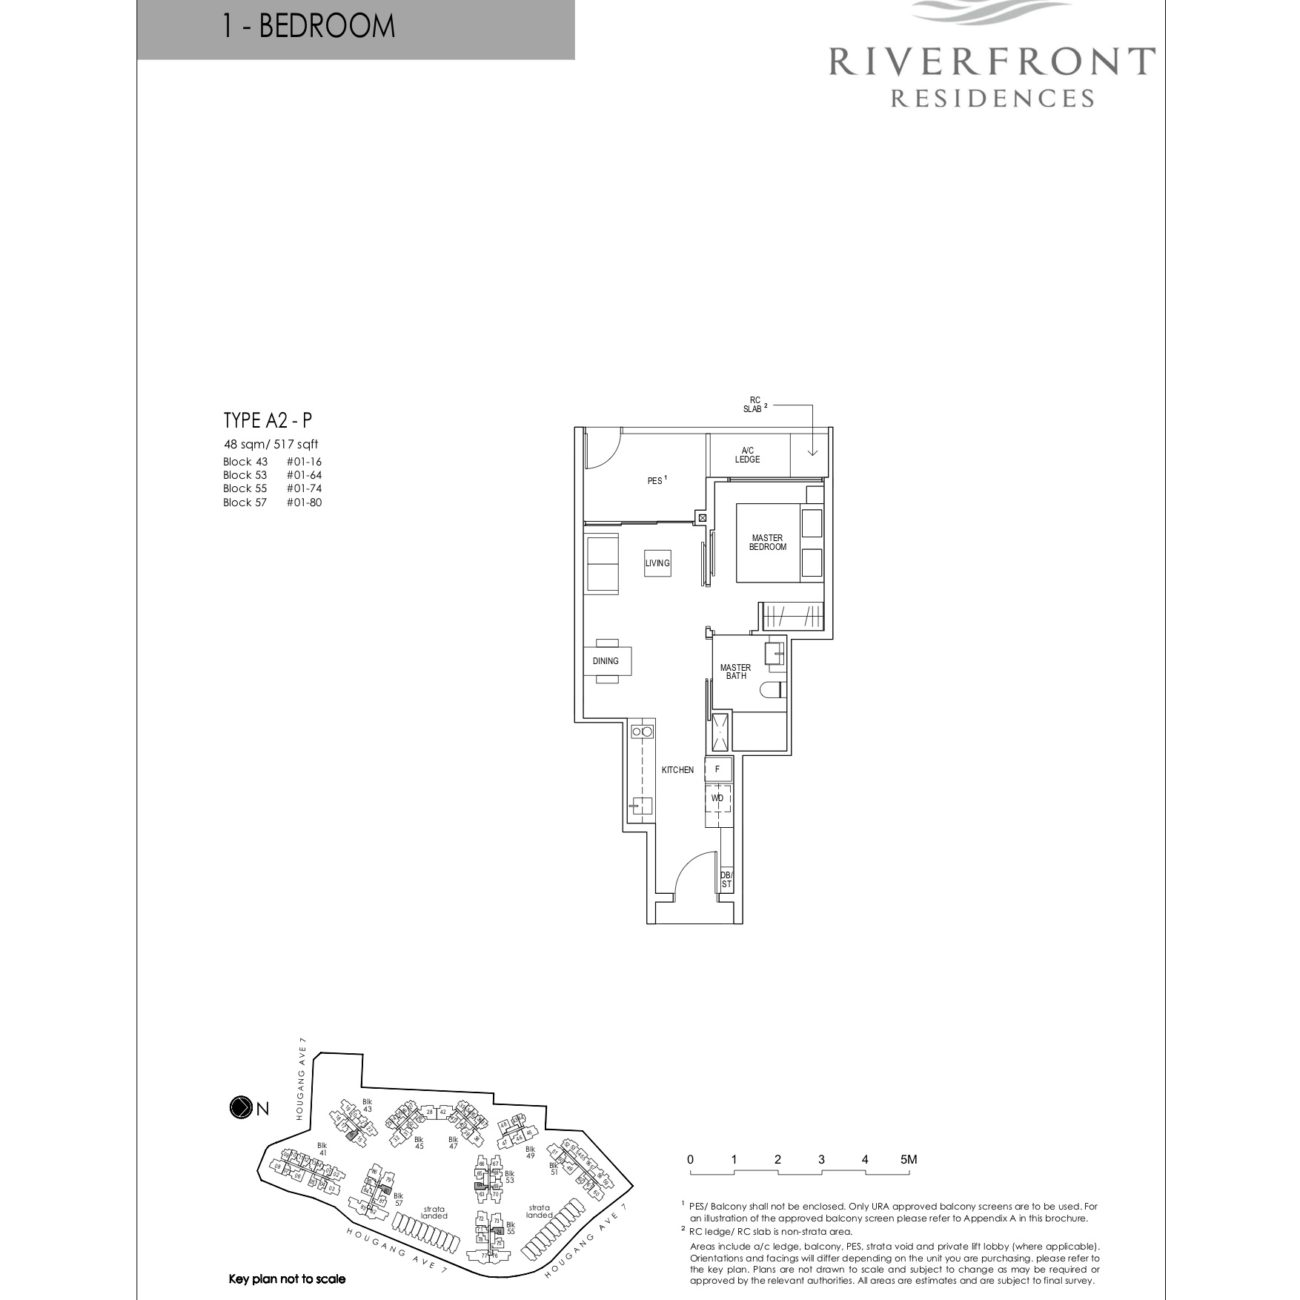 riverfront-residences-floorplan-1bedroom-a2p